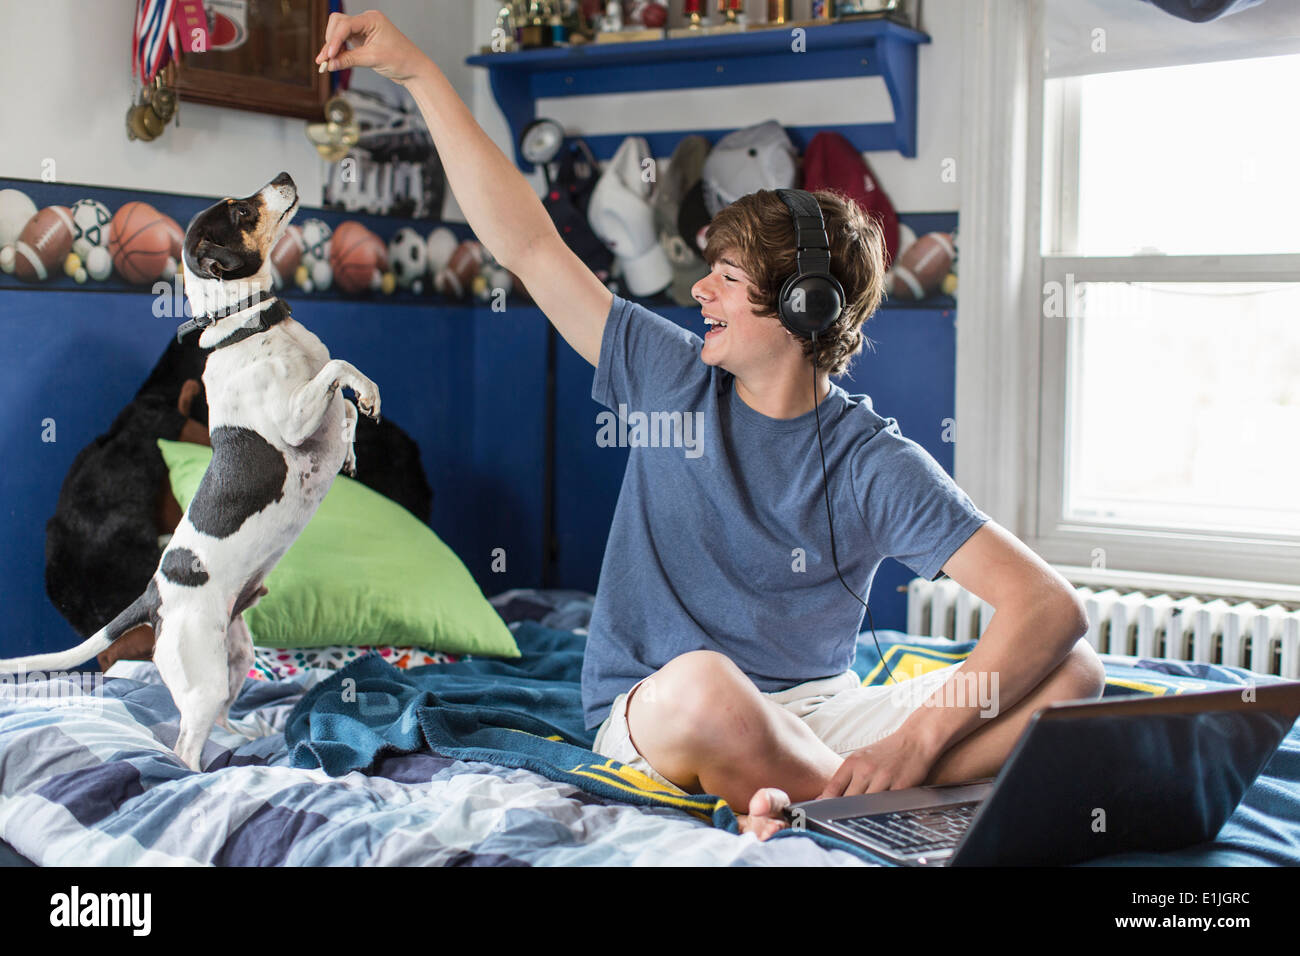 Teenage boy sitting on bed with laptop computer, playing with dog - Stock Image